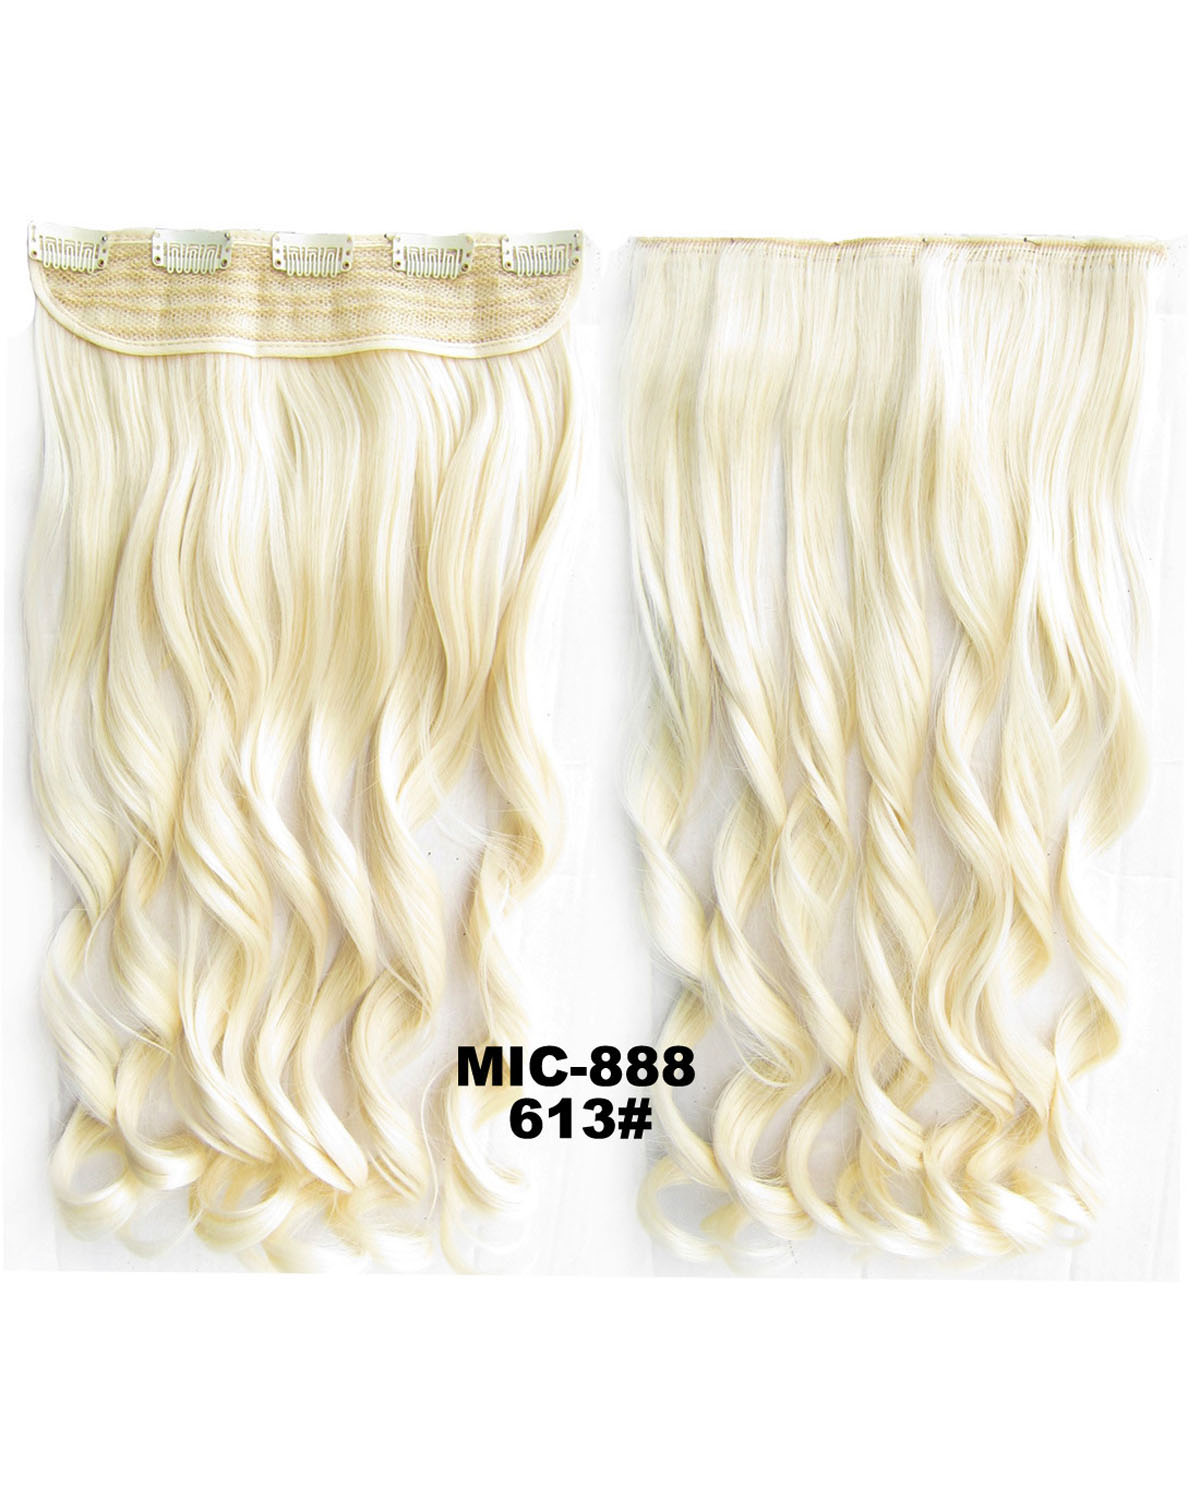 24 Inch Female Salable and Good Quality Body Wave Curly Long One Piece 5 Clips Clip in Synthetic Hair Extension613# 100g